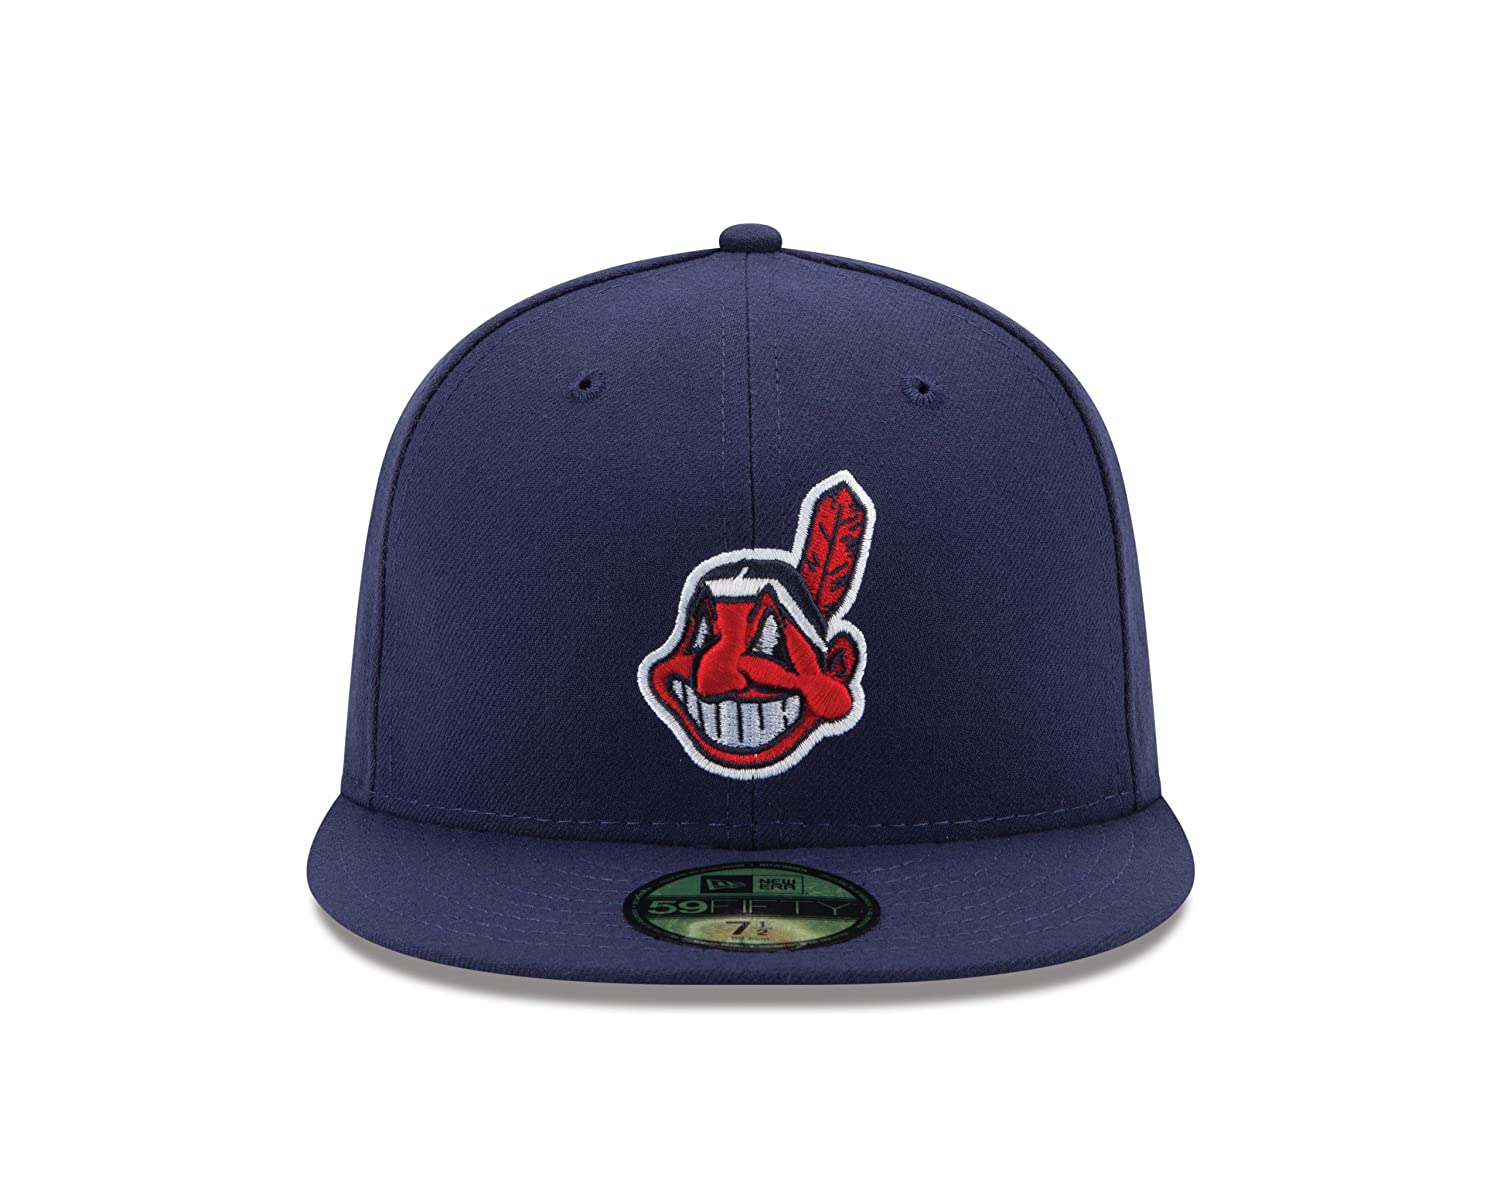 d7958574 New Era 59Fifty MLB Cleveland Indians Alternate 2 On Field Fitted Hat